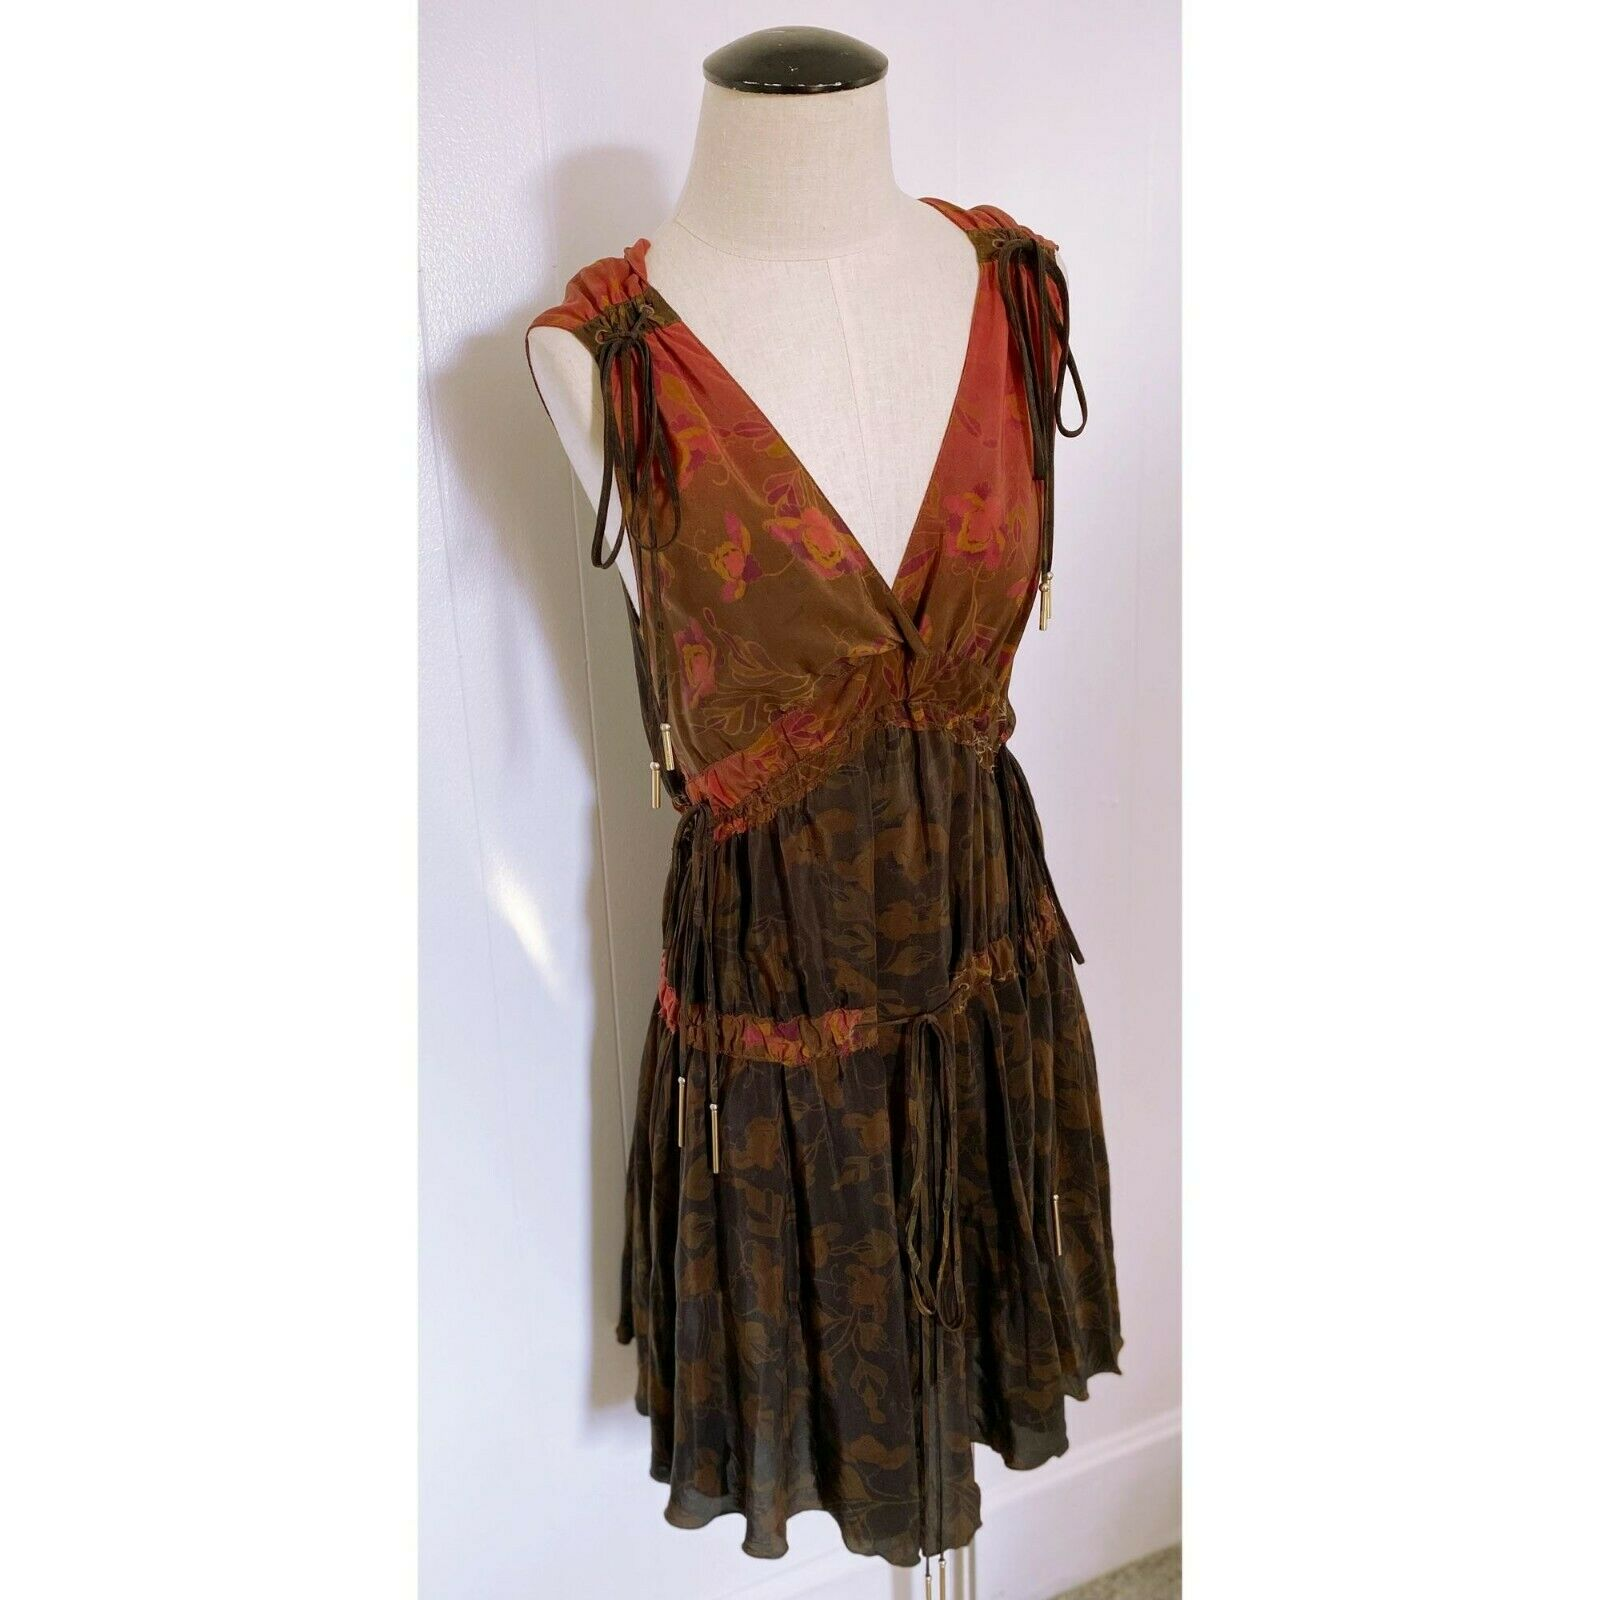 Bally 100% Silk Made in Italy Dress V Neck Boho Tiered Tie Tassel Size 8 Brown